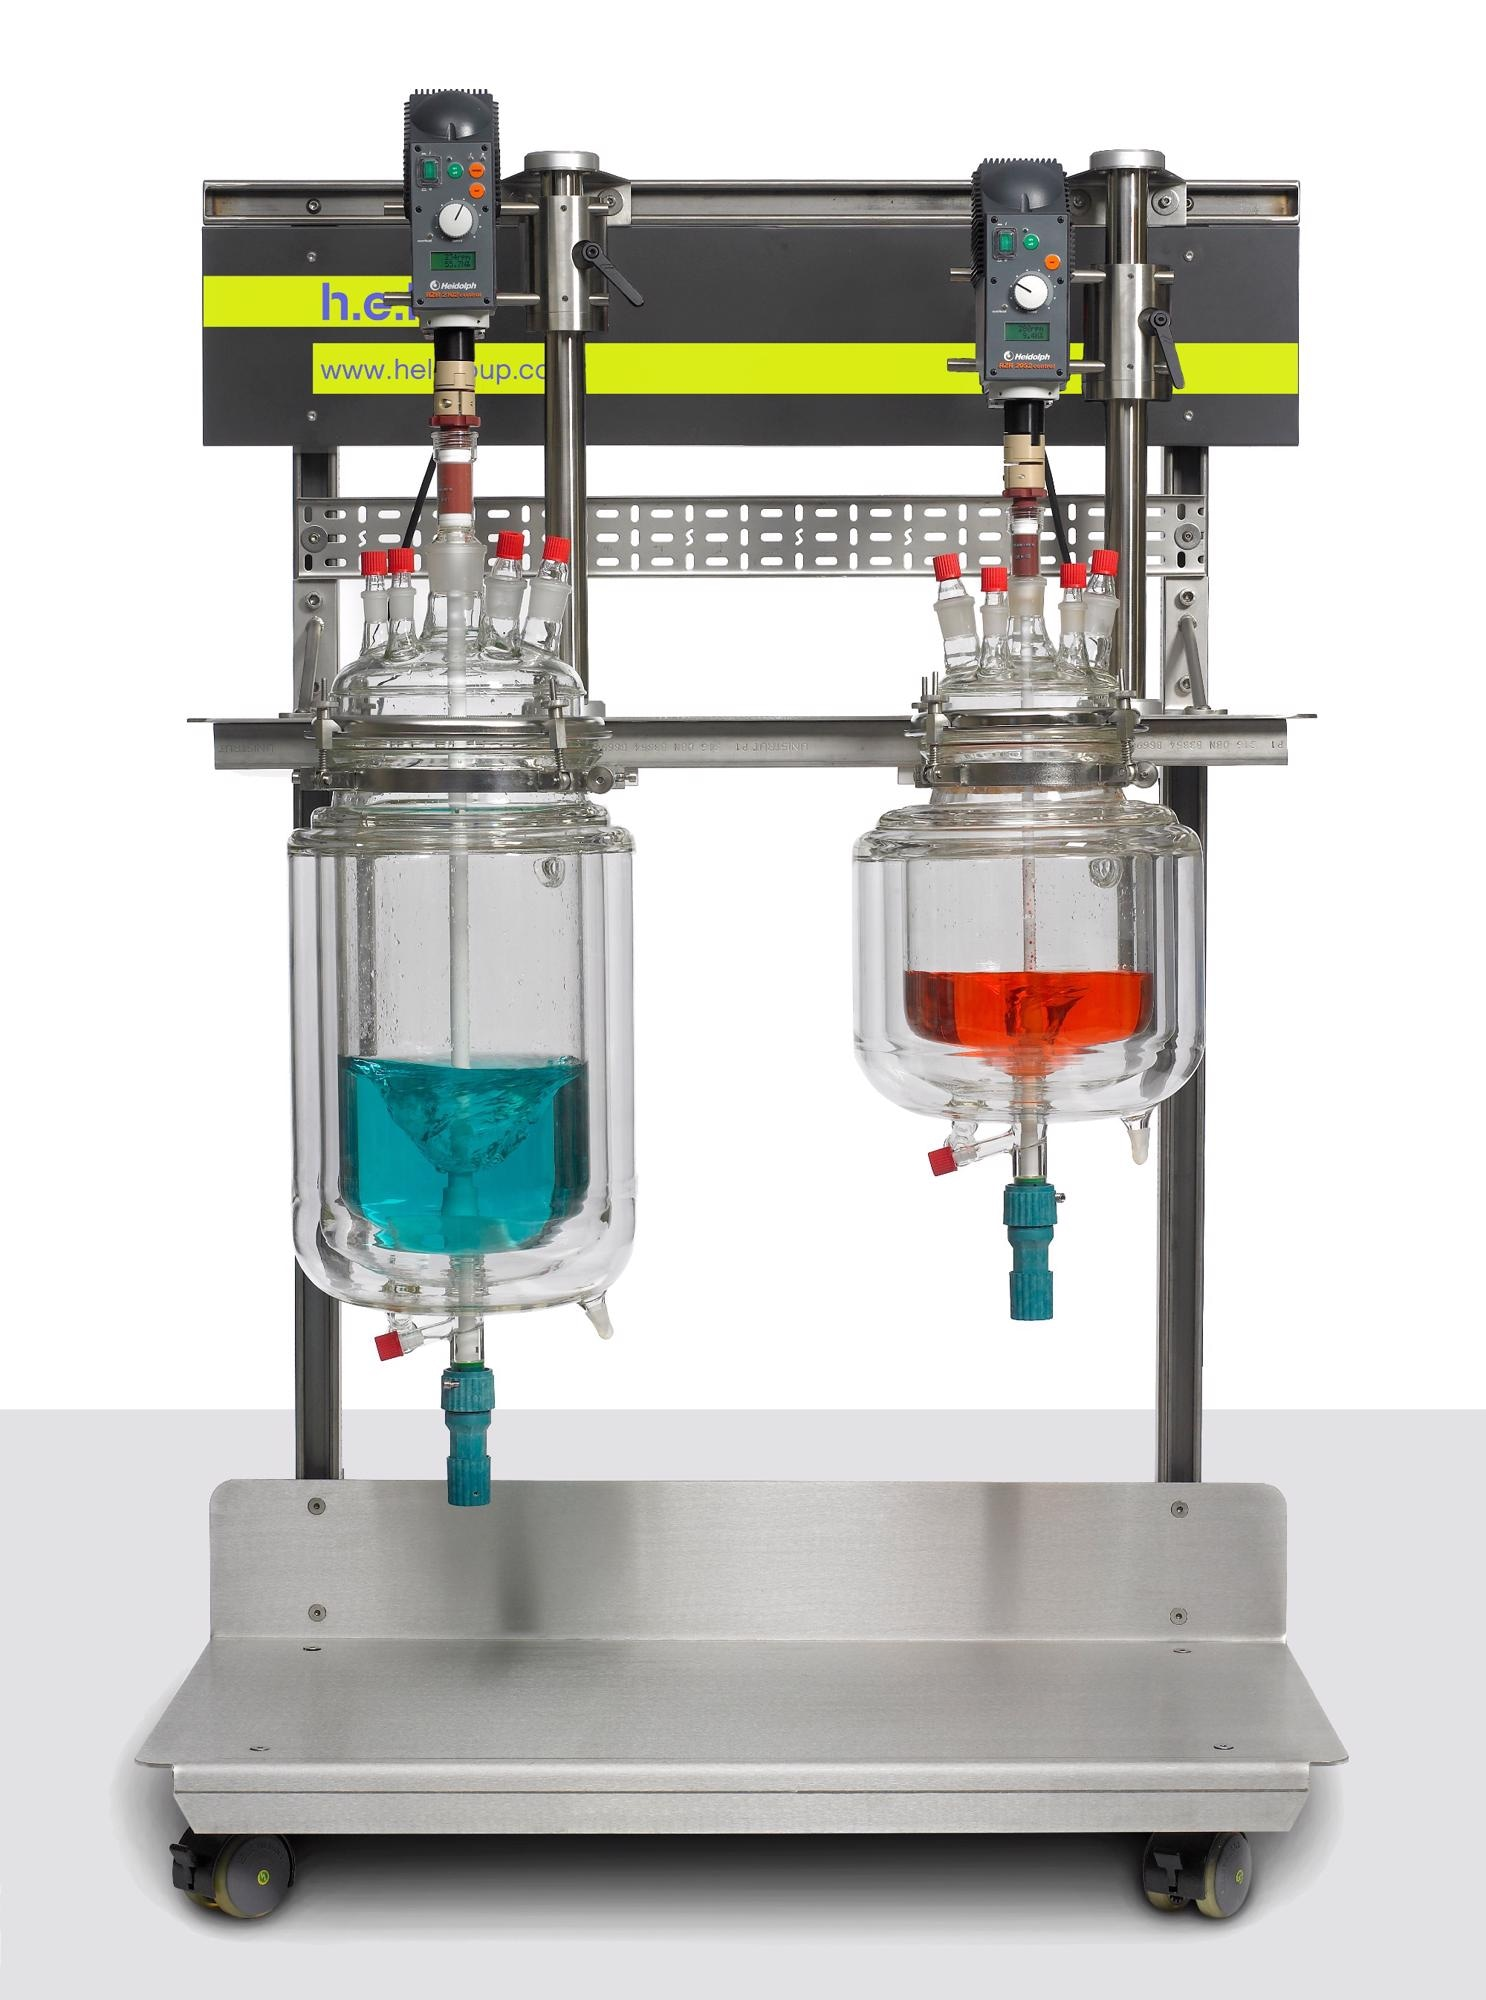 AutoLAB: A Bench-Top Automated Reactor System